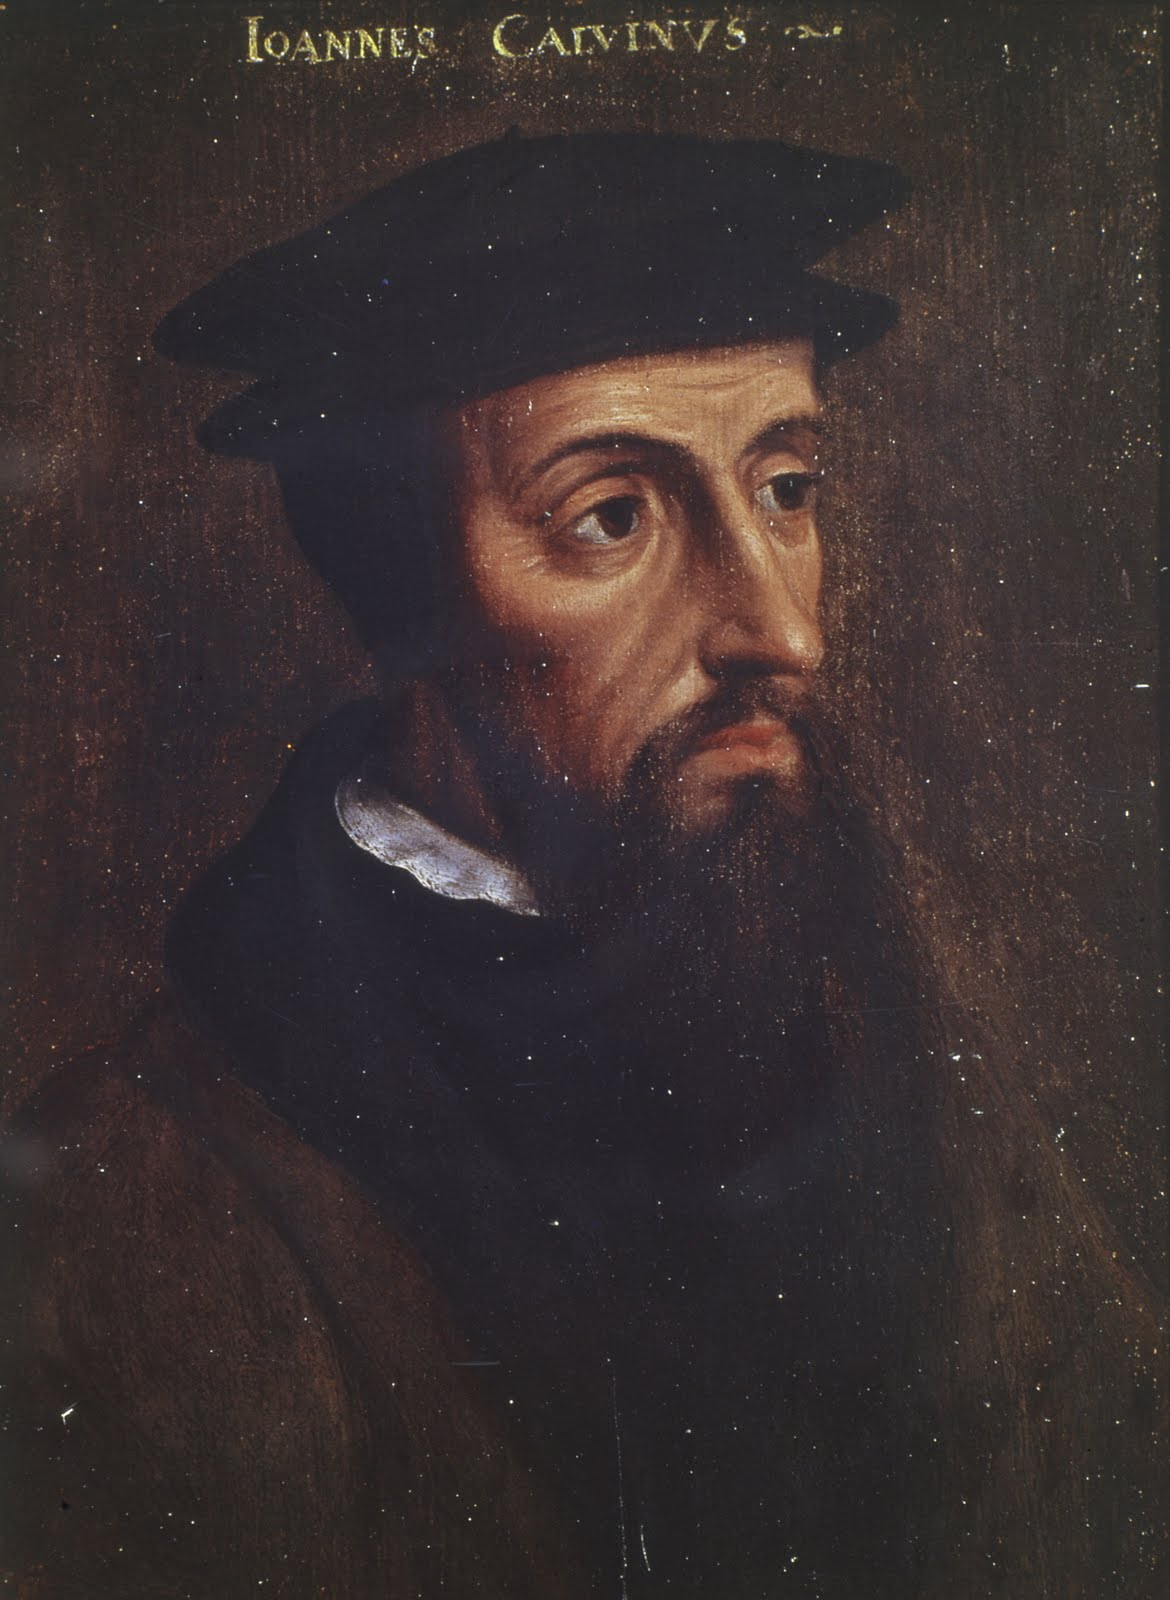 martin luther john calvin biography John calvin: john calvin he also continued his commentaries on scripture, working through the whole new testament except the revelation to john and most of the old testament unlike martin luther, calvin was a reticent man.